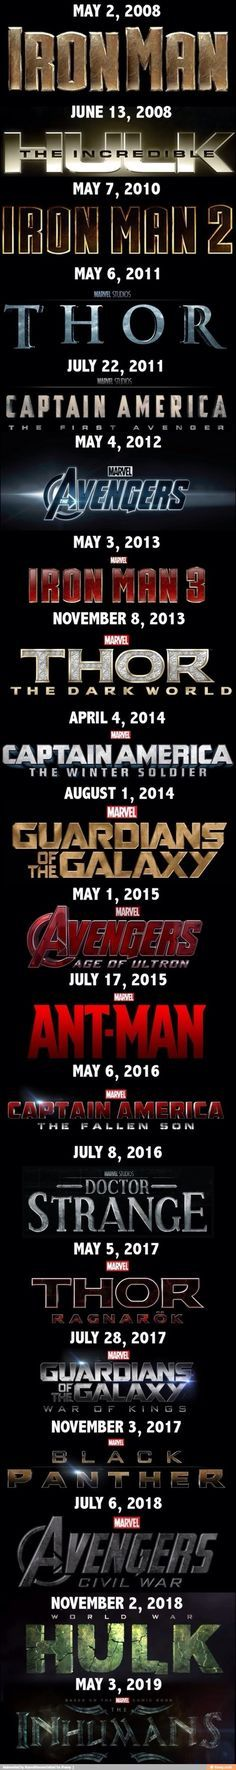 Marvel Cinematic Universe Release Dates, a comic book lover's wet dream